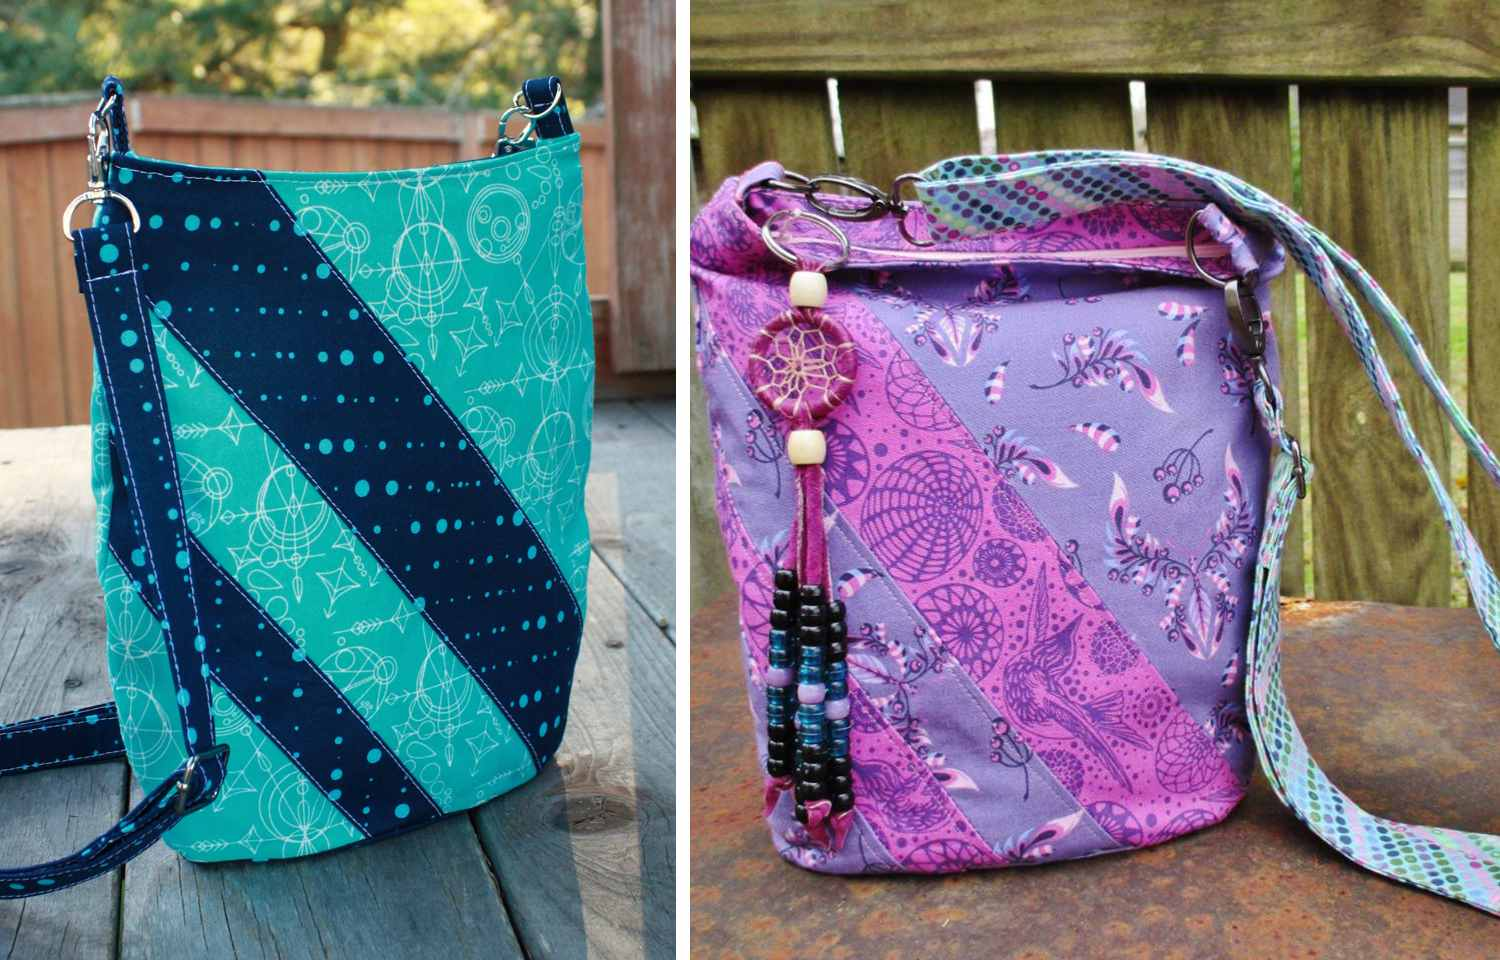 25 Free Purse And Bag Patterns To Sew